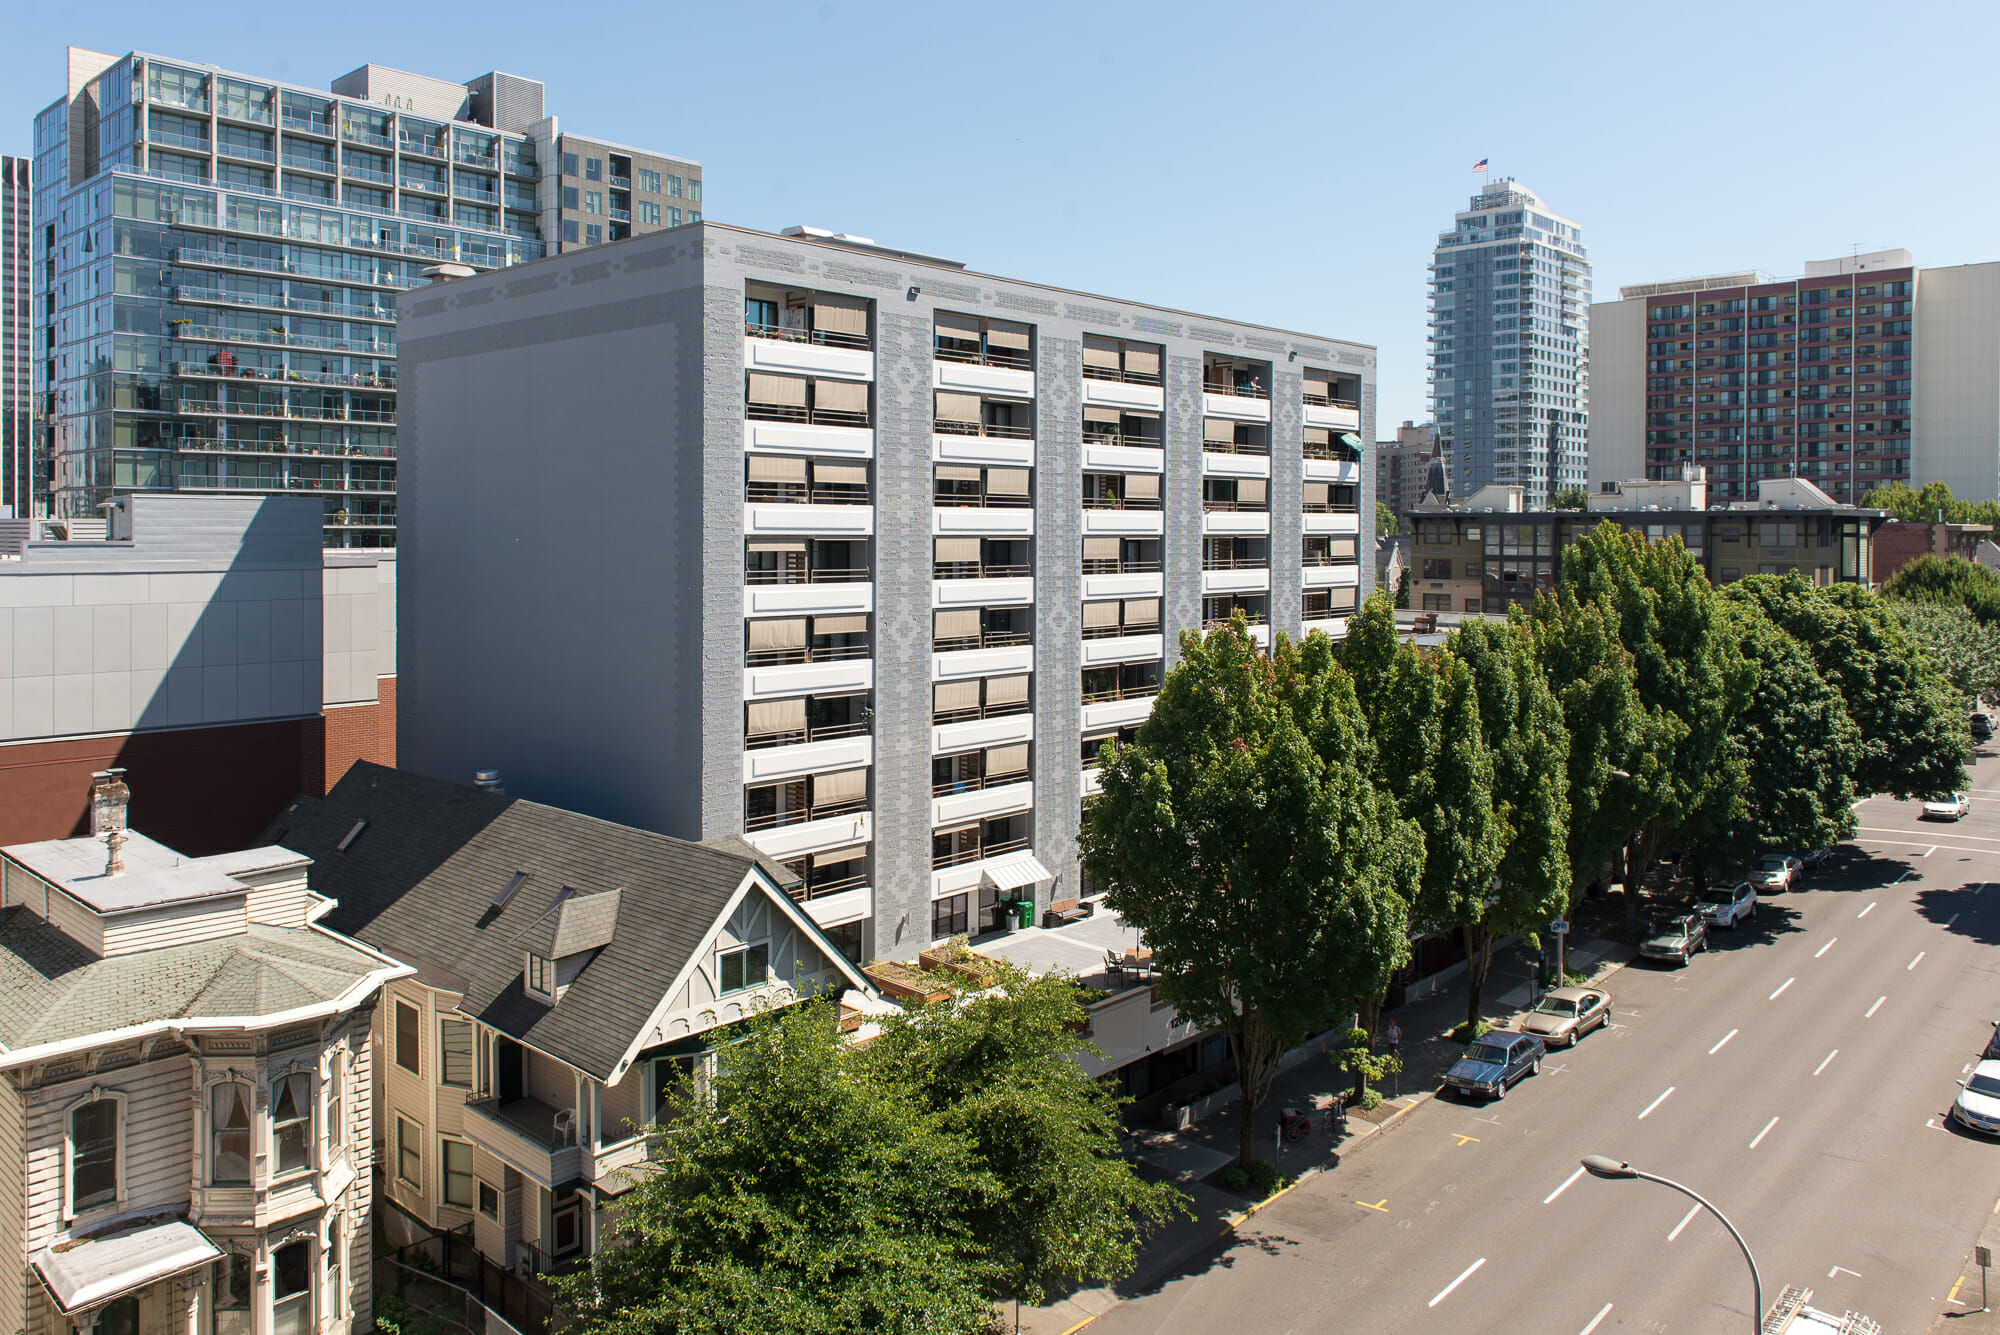 wned by Cedar Sinai Park and managed by Harsch Investment Properties, the 1200 Building is 100% Section 8 affordable housing for low income elderly and disabled persons